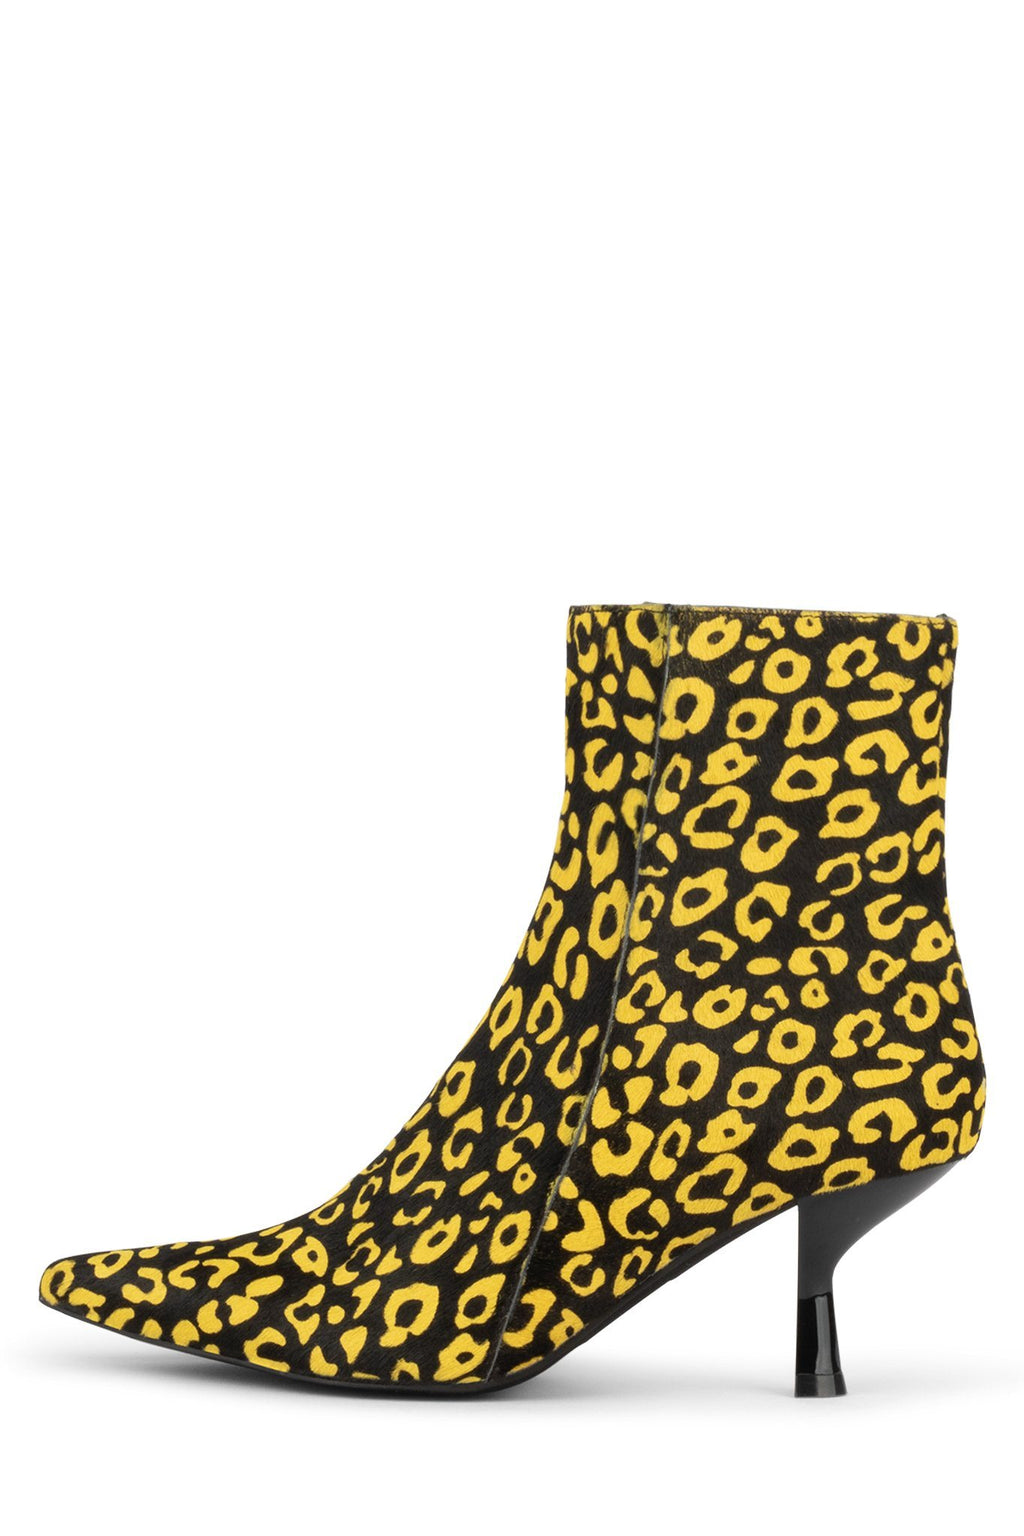 EGNYTE-F Heeled Bootie YYH Yellow Black Cheetah 6